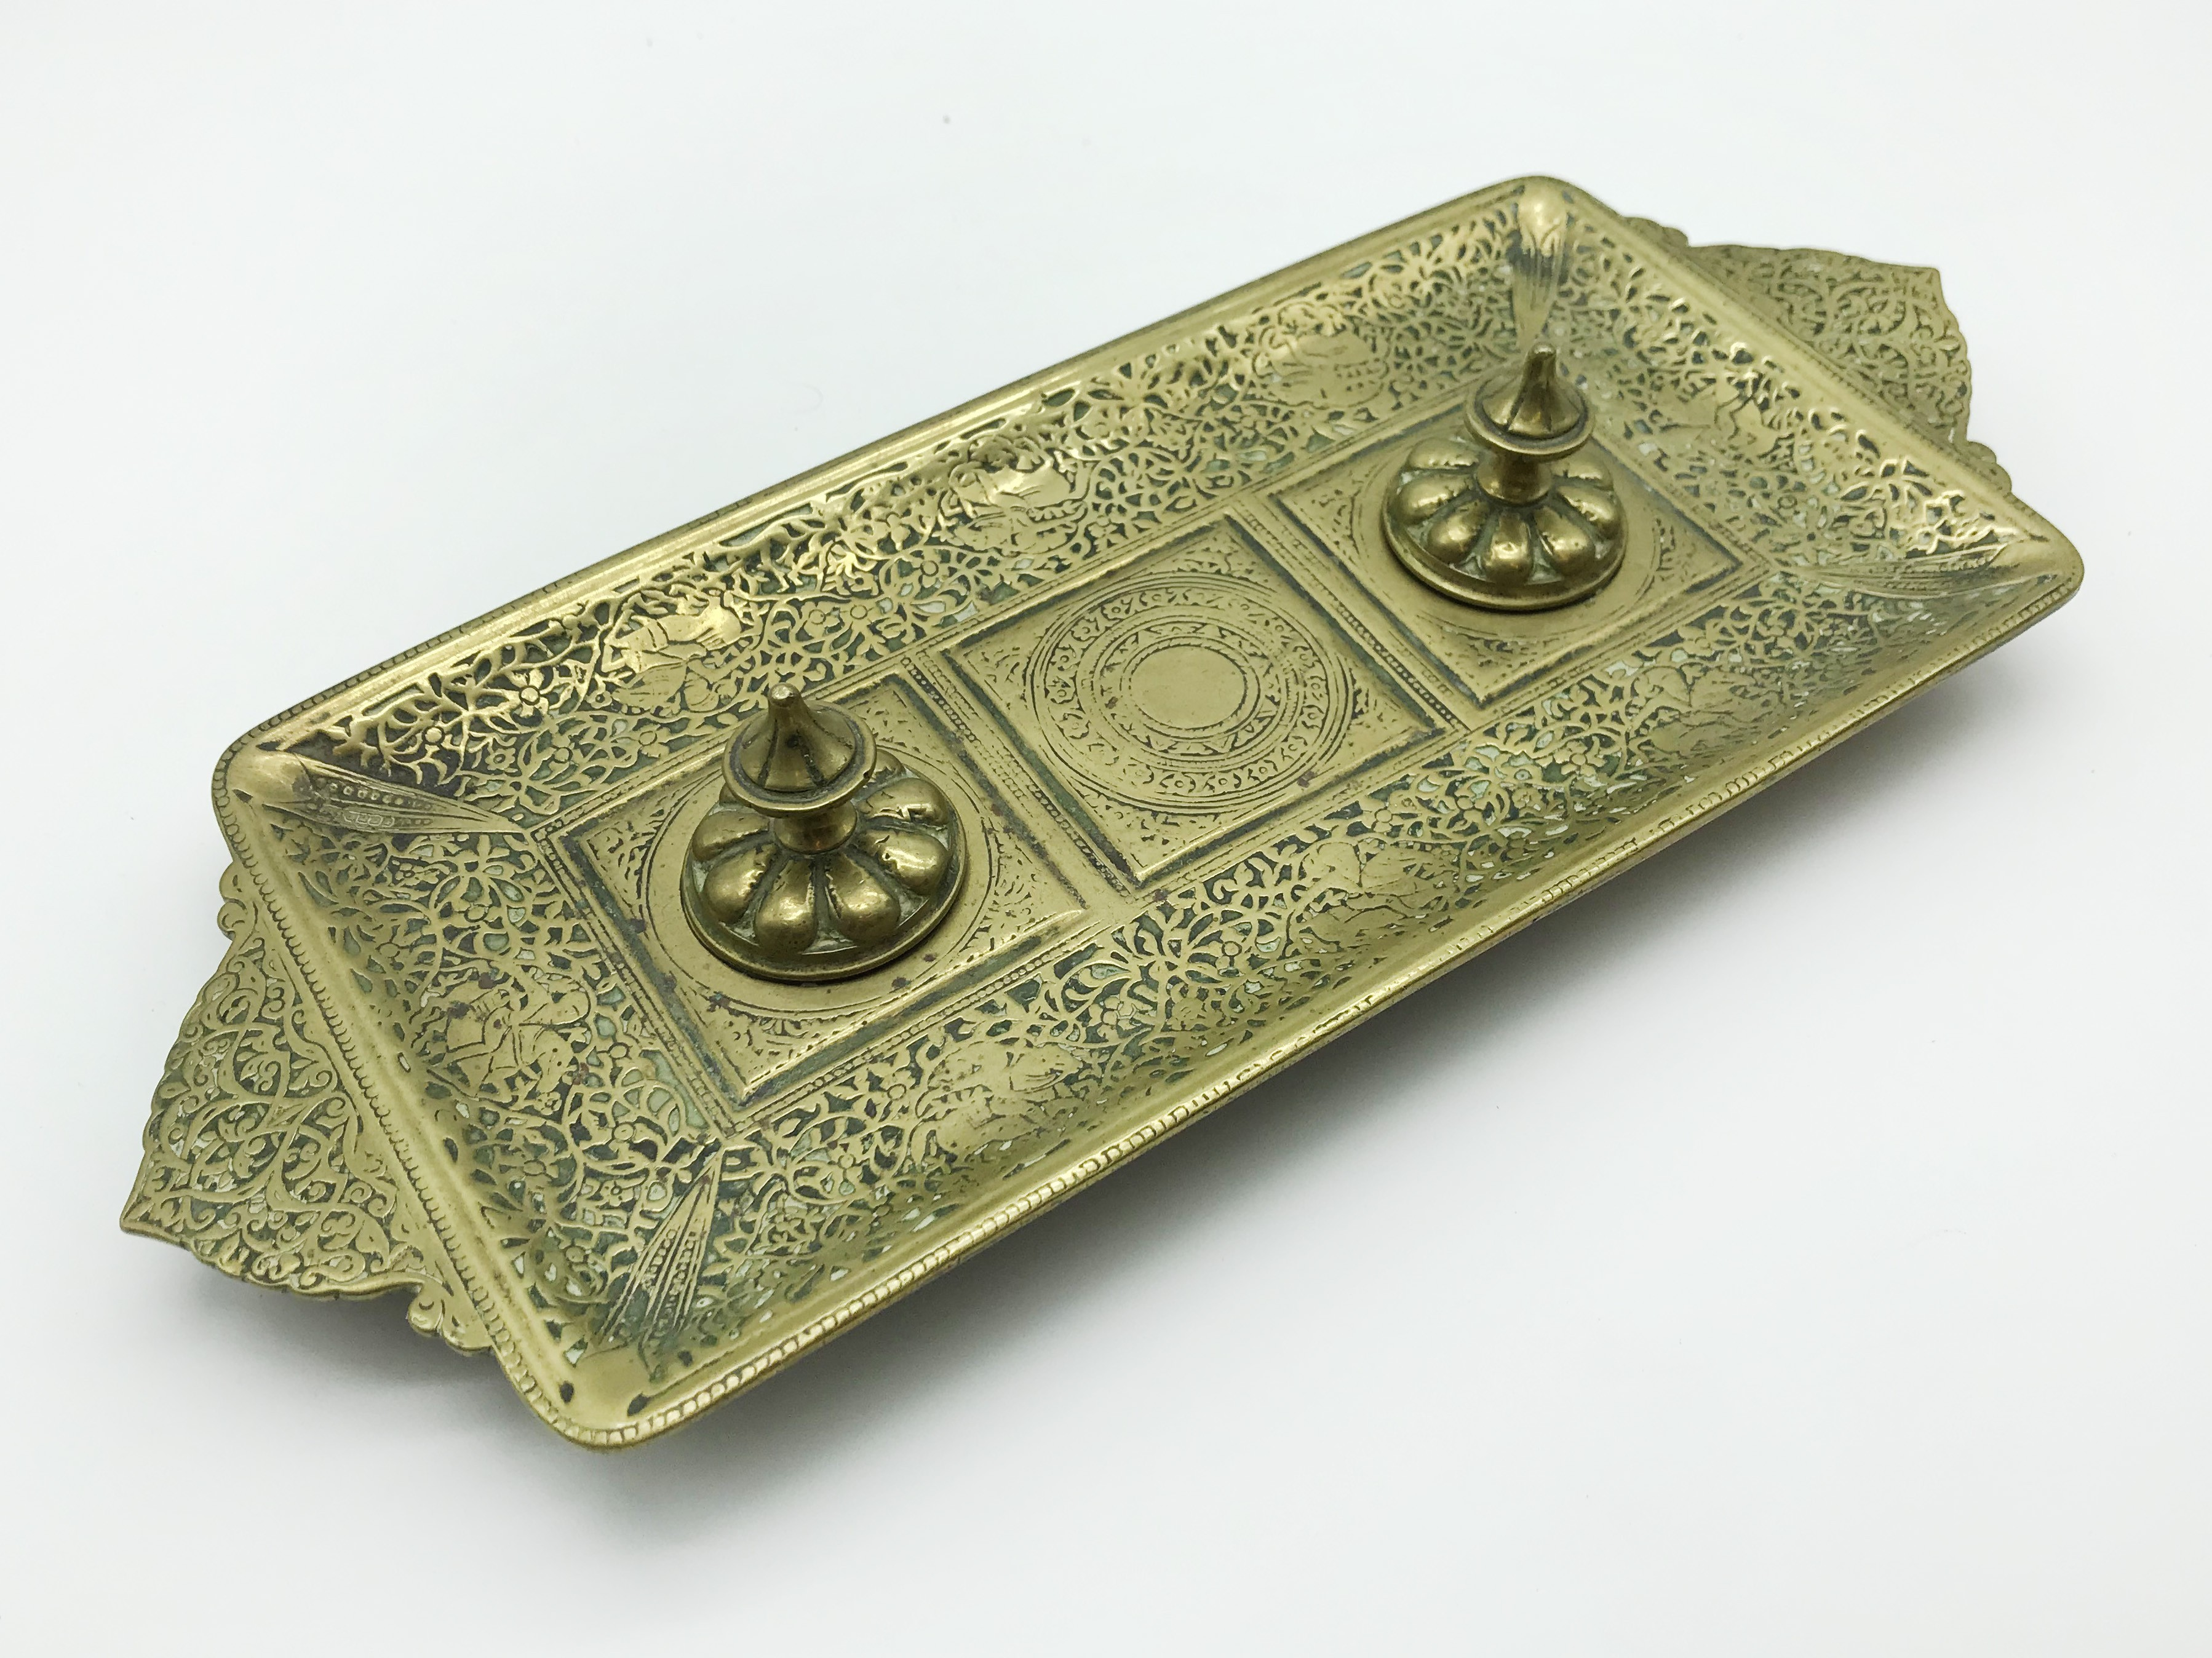 Lot 54 - LARGE HEAVY SOLID BRASS MIDDLE EASTERN INKWELL